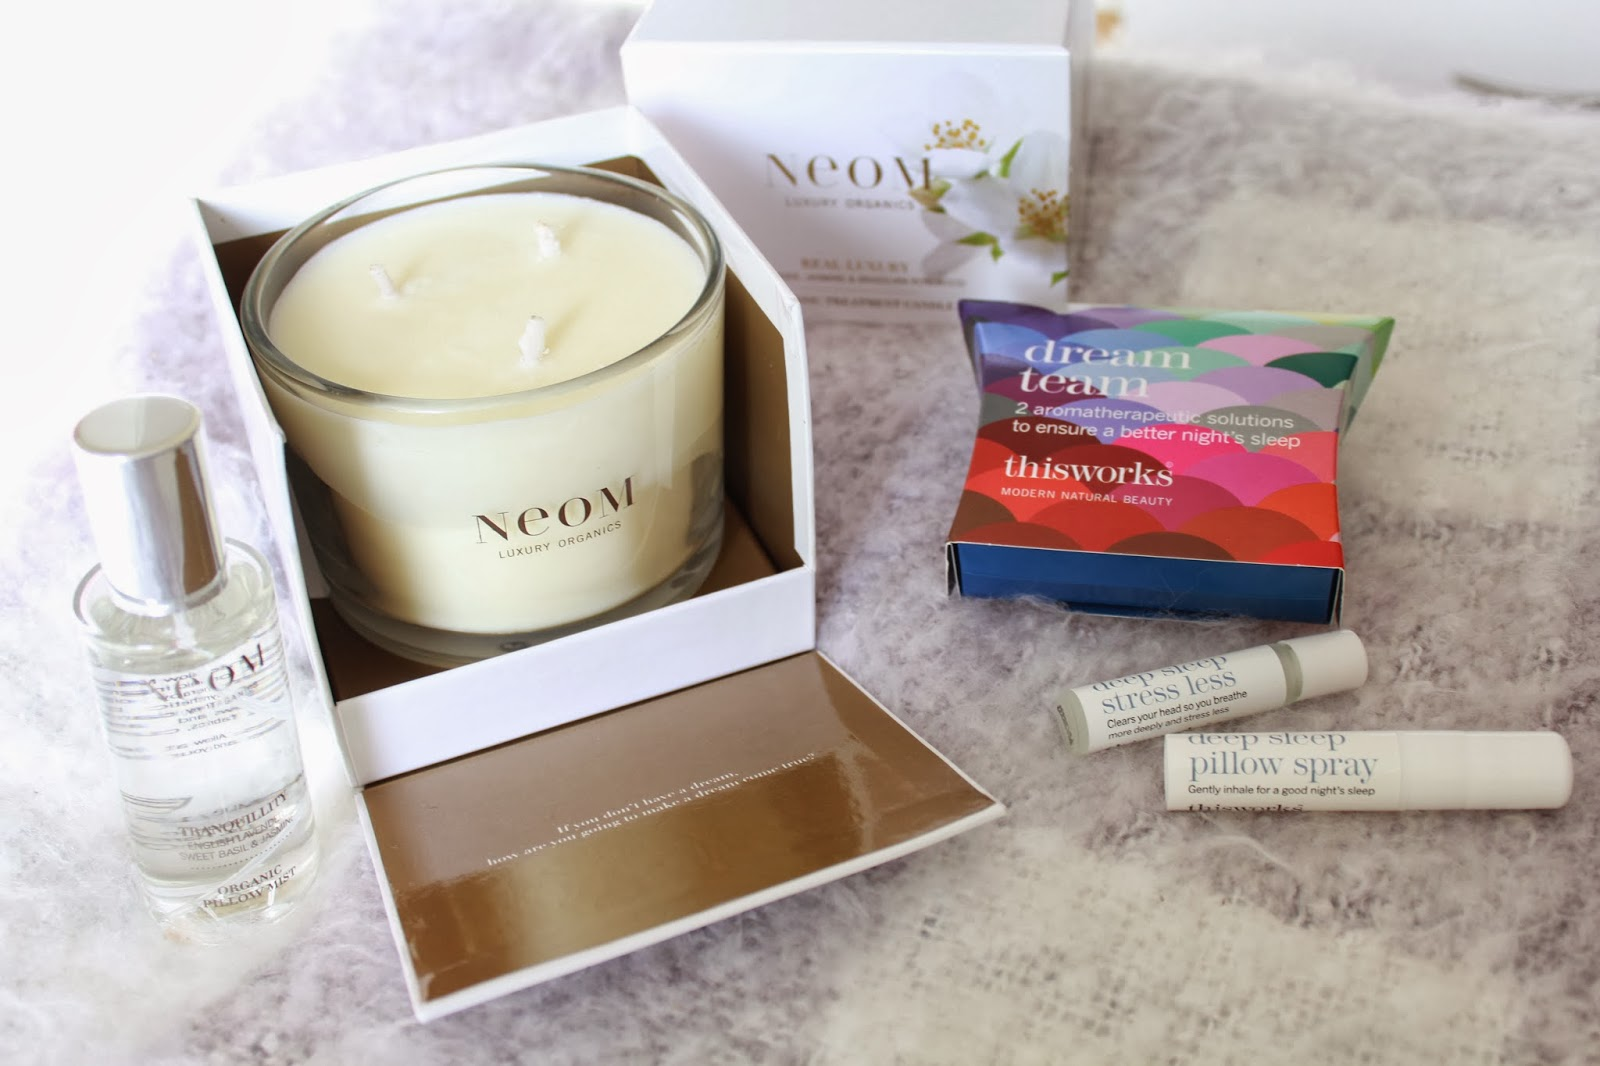 Neom Lavender candle